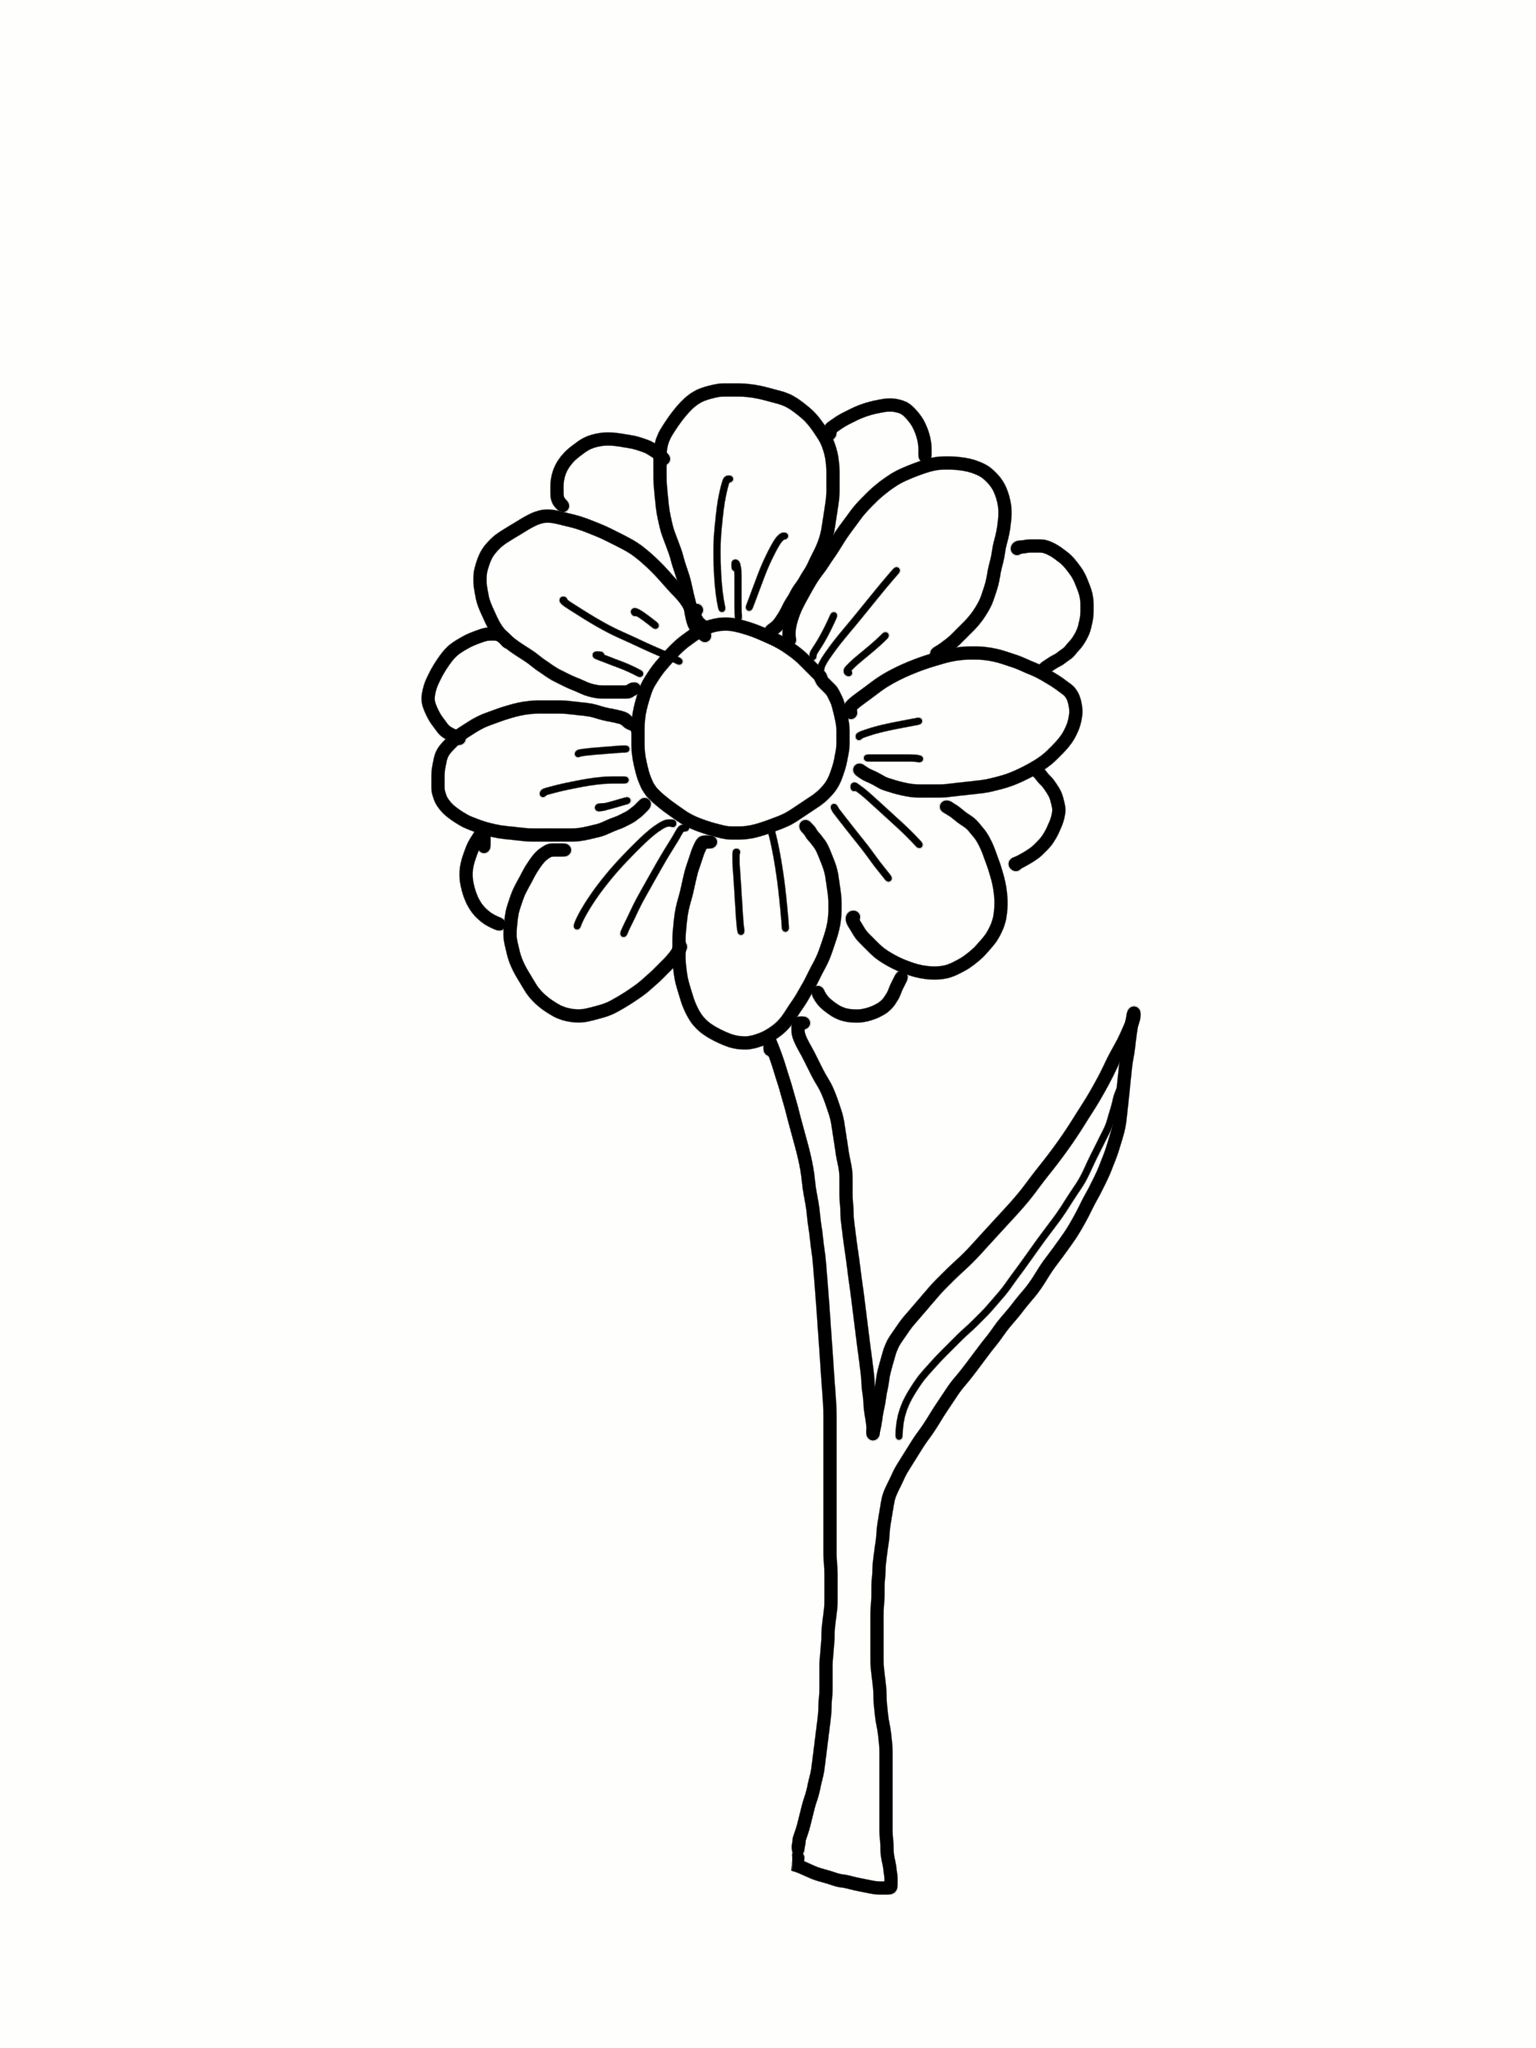 Printable Colouring Pages | Phonics Activities | Pinterest ...